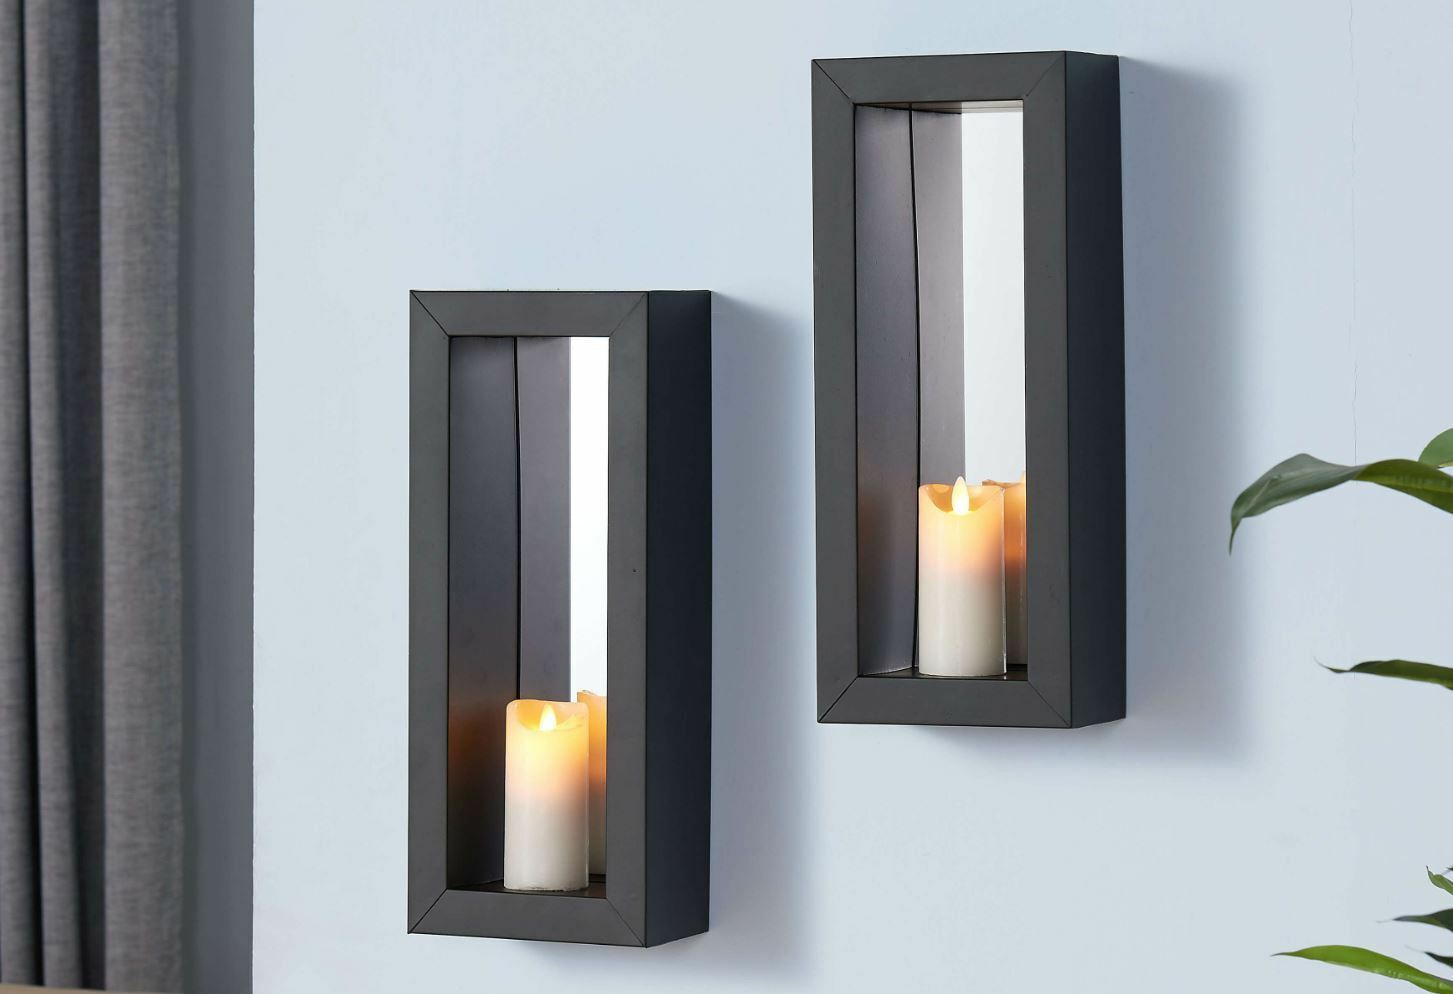 2 Mirror Candle Wall Sconce Holder Set Metal Pair Decor